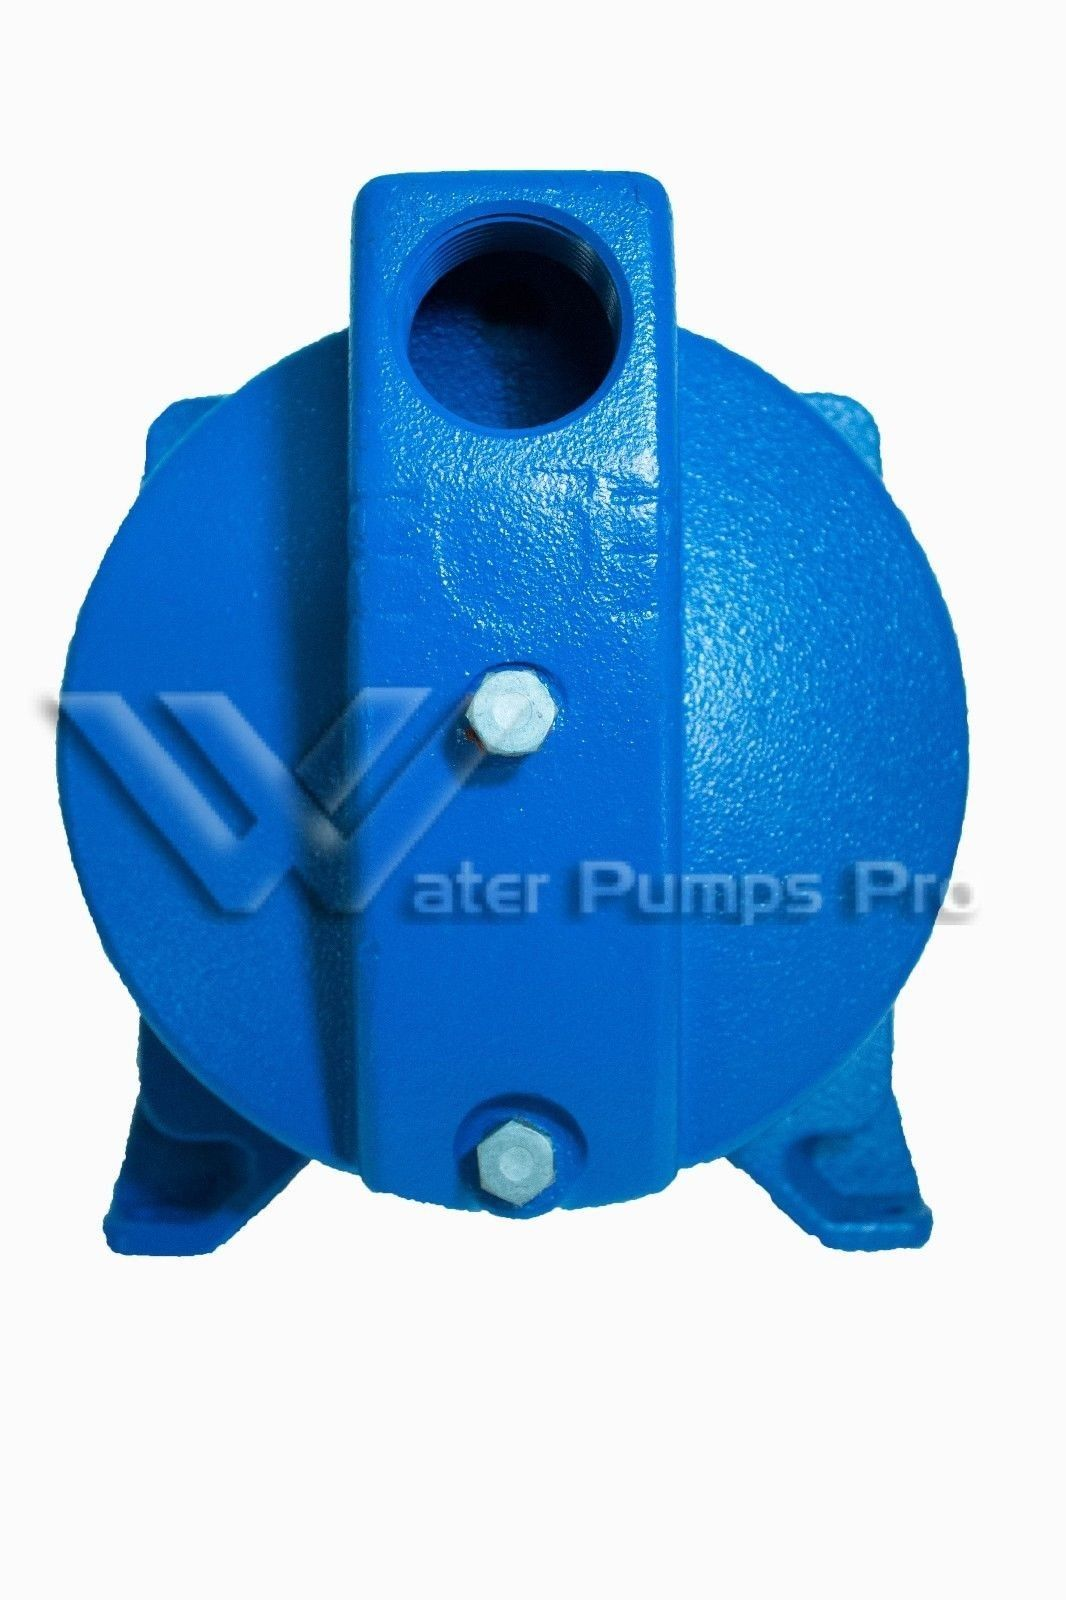 1K333 Goulds Pump Casing for J15S3 1.5 HP Shallow Well Jet Pump